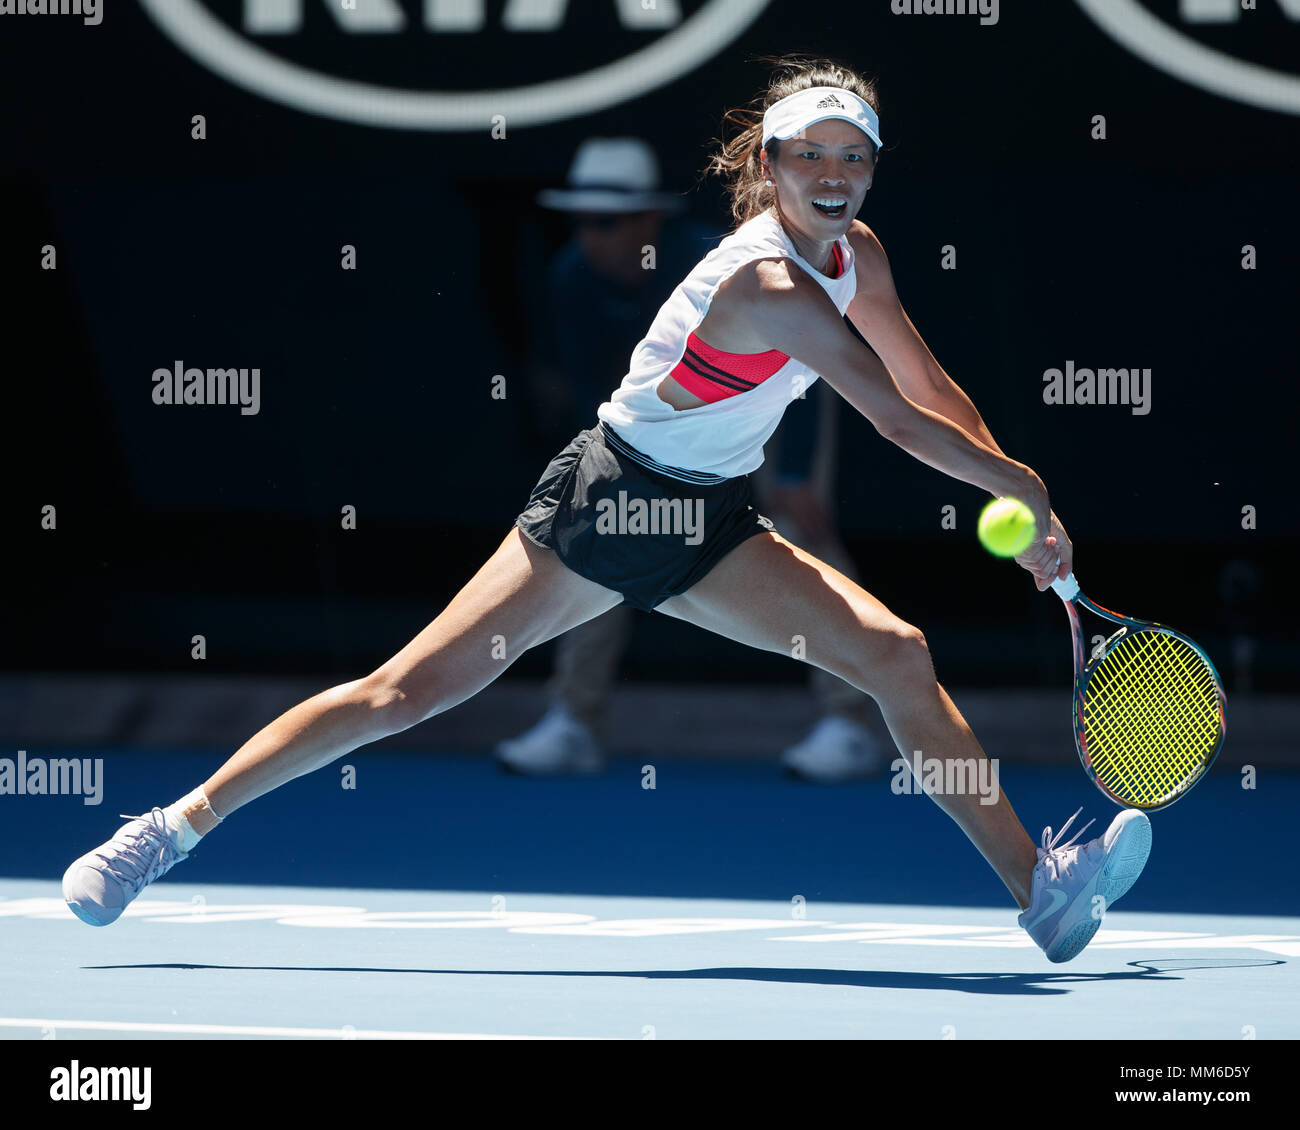 Taiwanese tennis player Su-Wei Hsieh playing backhand shot in Australian Open 2018 Tennis Tournament, Melbourne Park, Melbourne, Victoria, Australia. - Stock Image